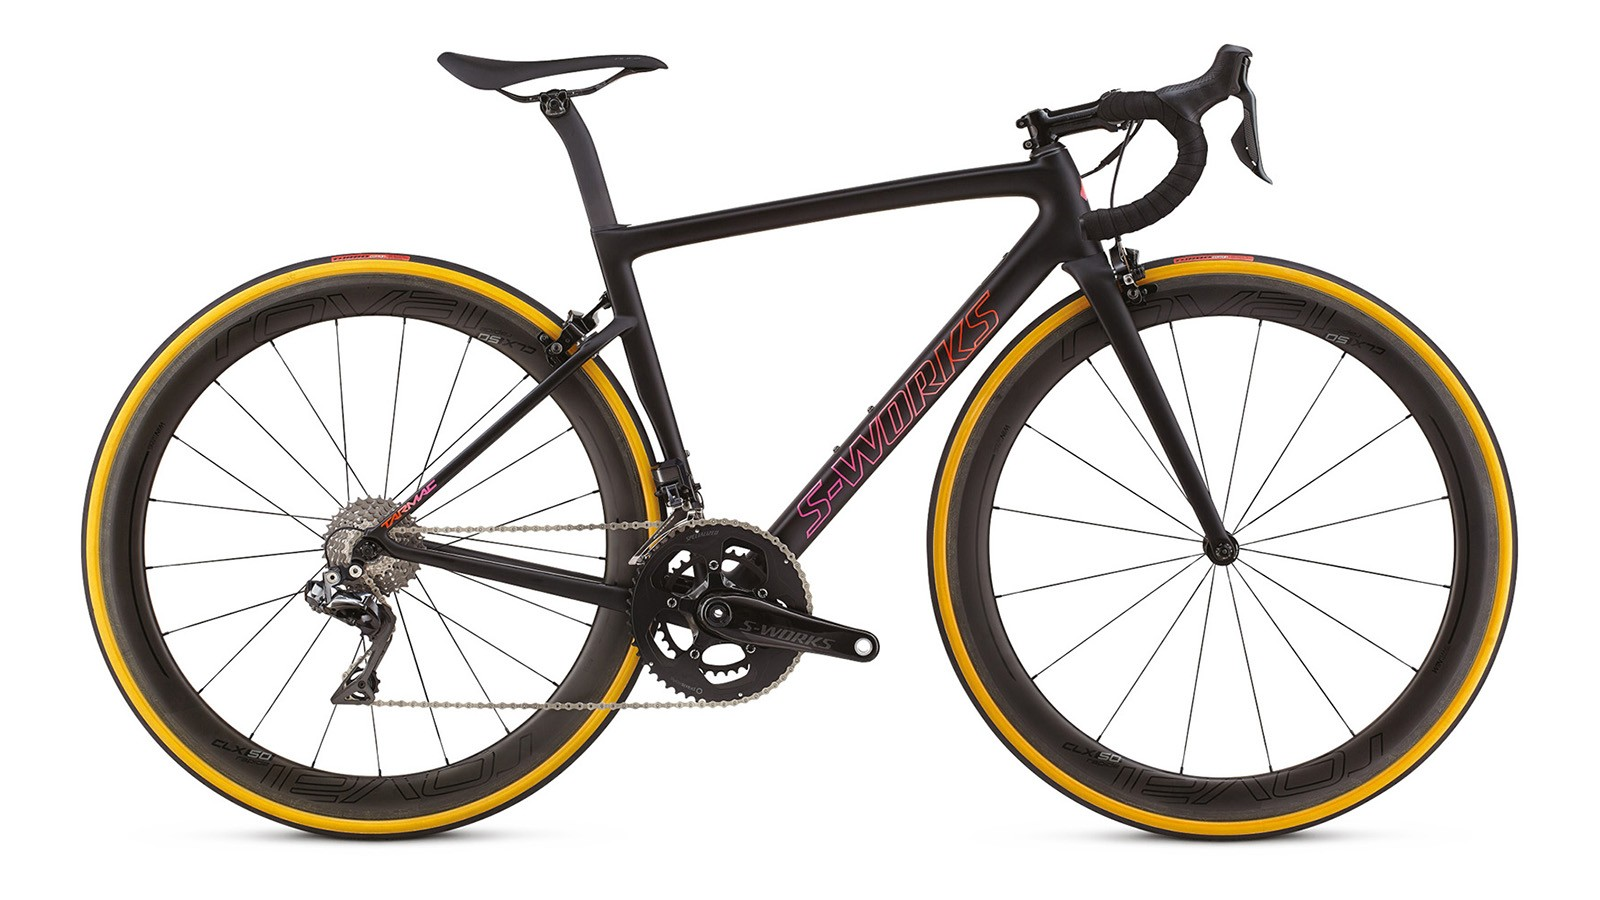 Although the women's frameset is exactly the same as the standard Tarmac, Specialized does offer smaller sizes and two women's specific builds. This is the S-Works model with Di2